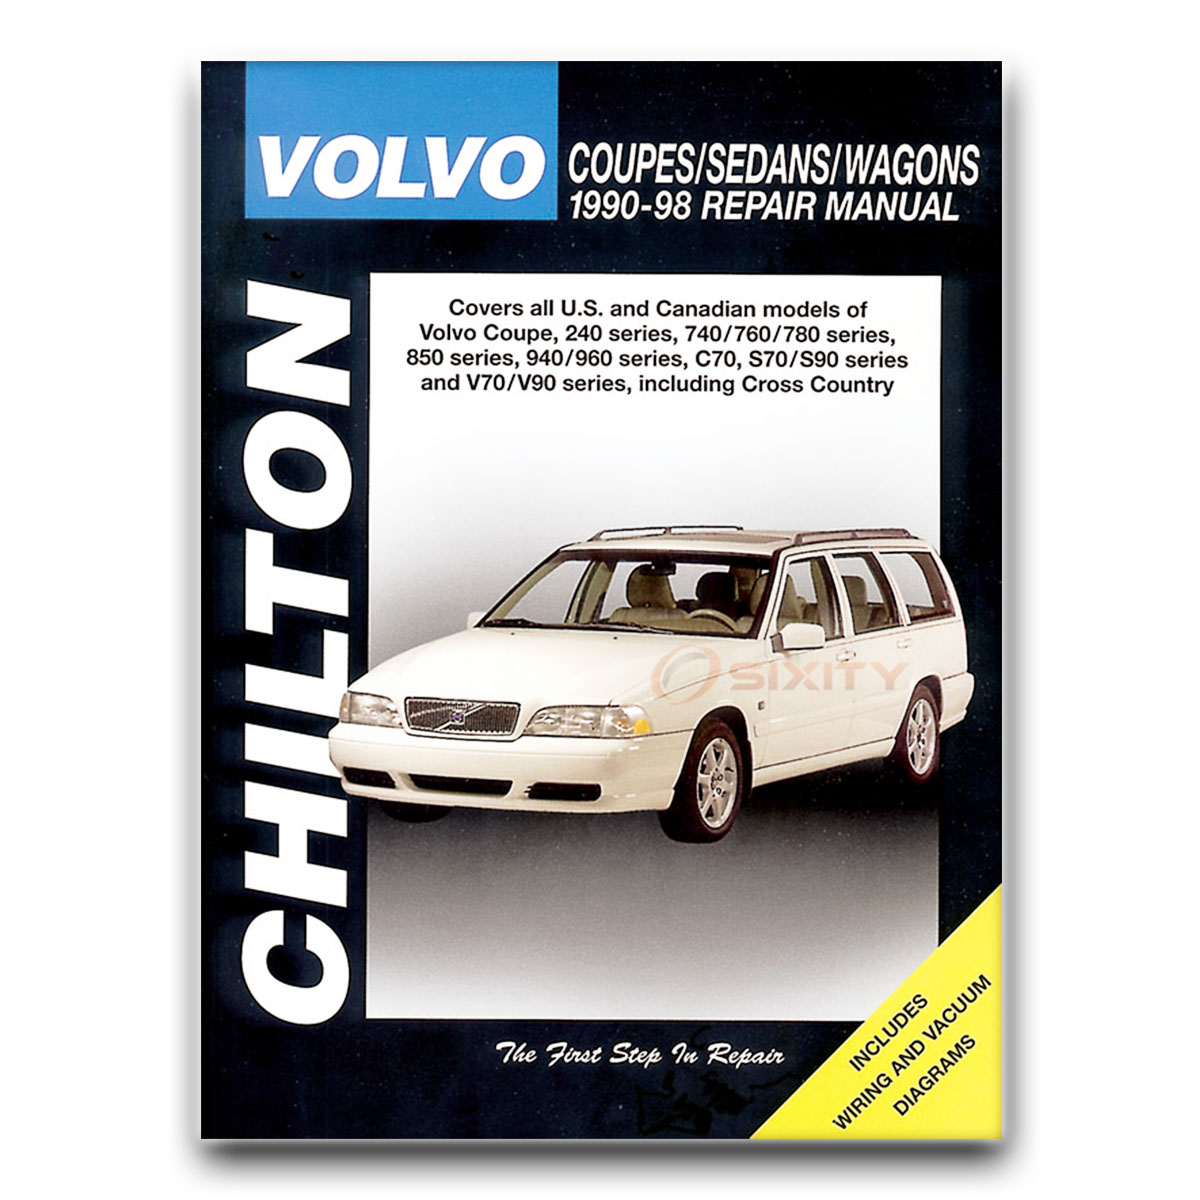 Chilton Repair Manual for Volvo 940 GLE T SE Base Shop Service Garage Book  pg